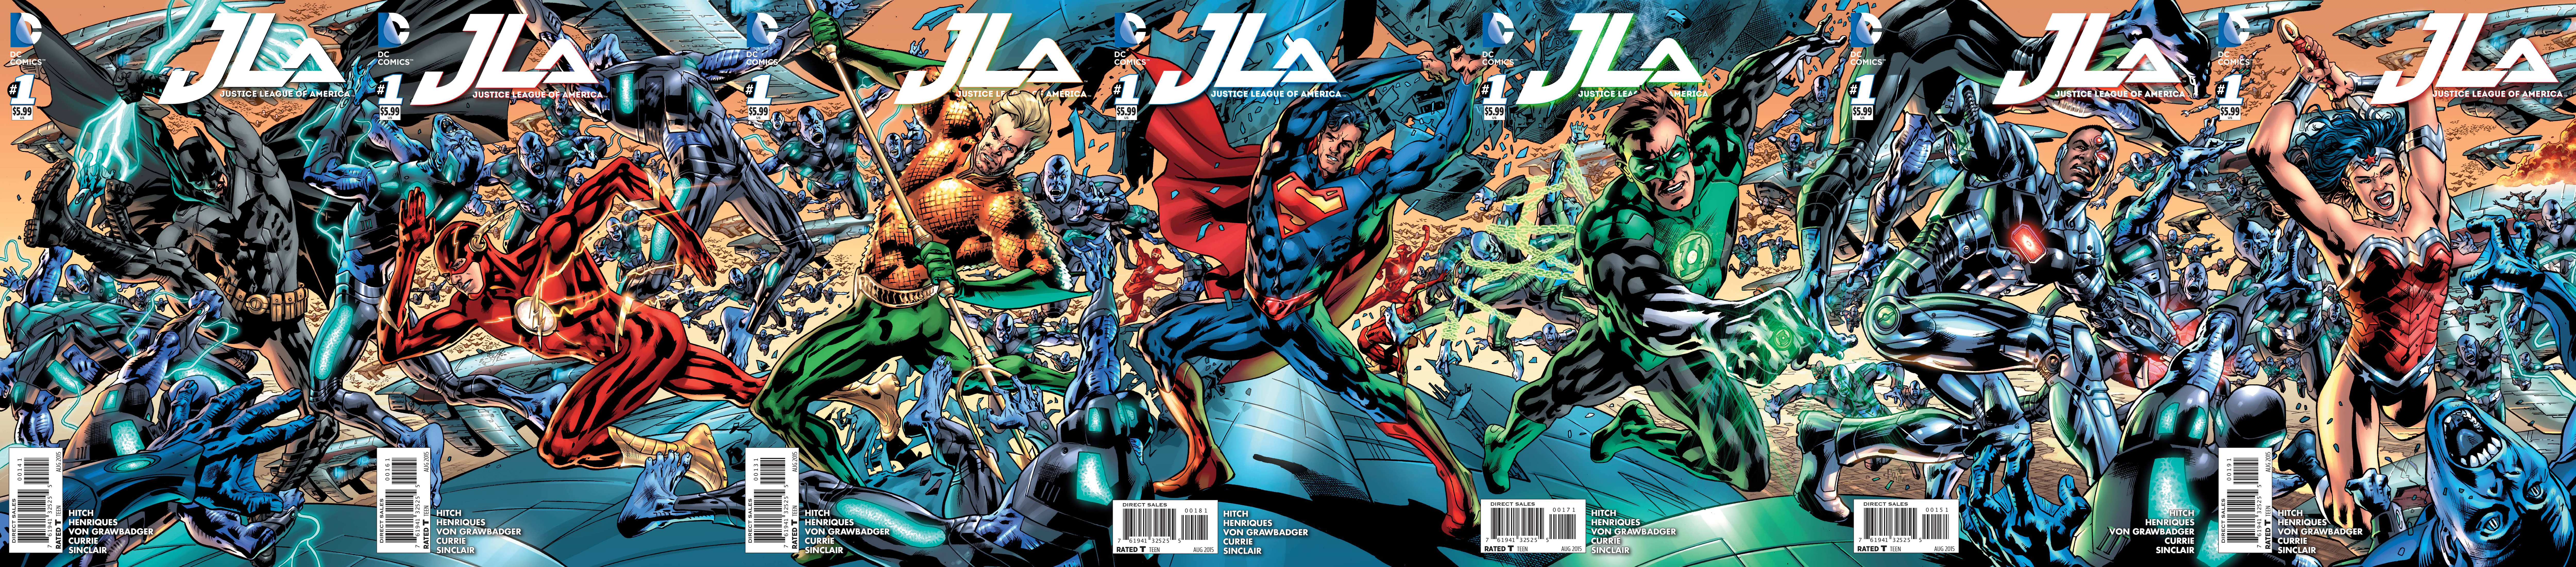 Jla Wallpaper Posted By Ethan Simpson